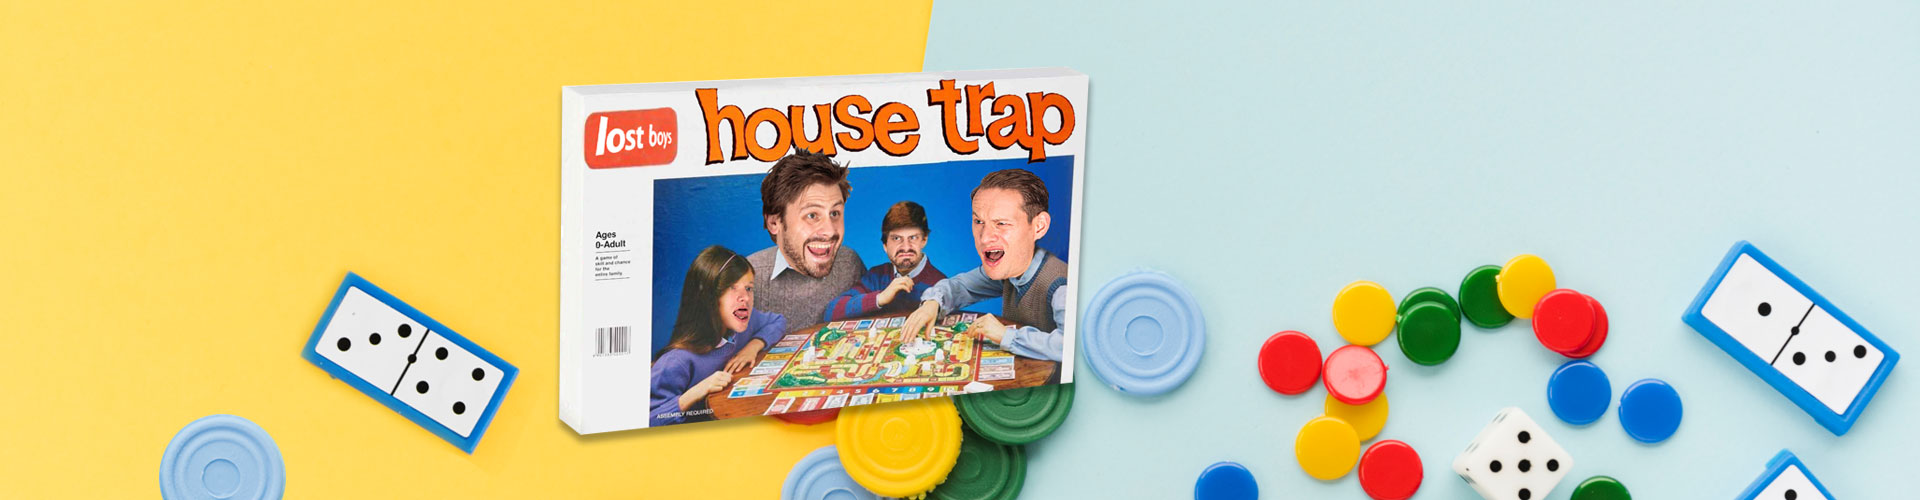 House Trap homepage banner